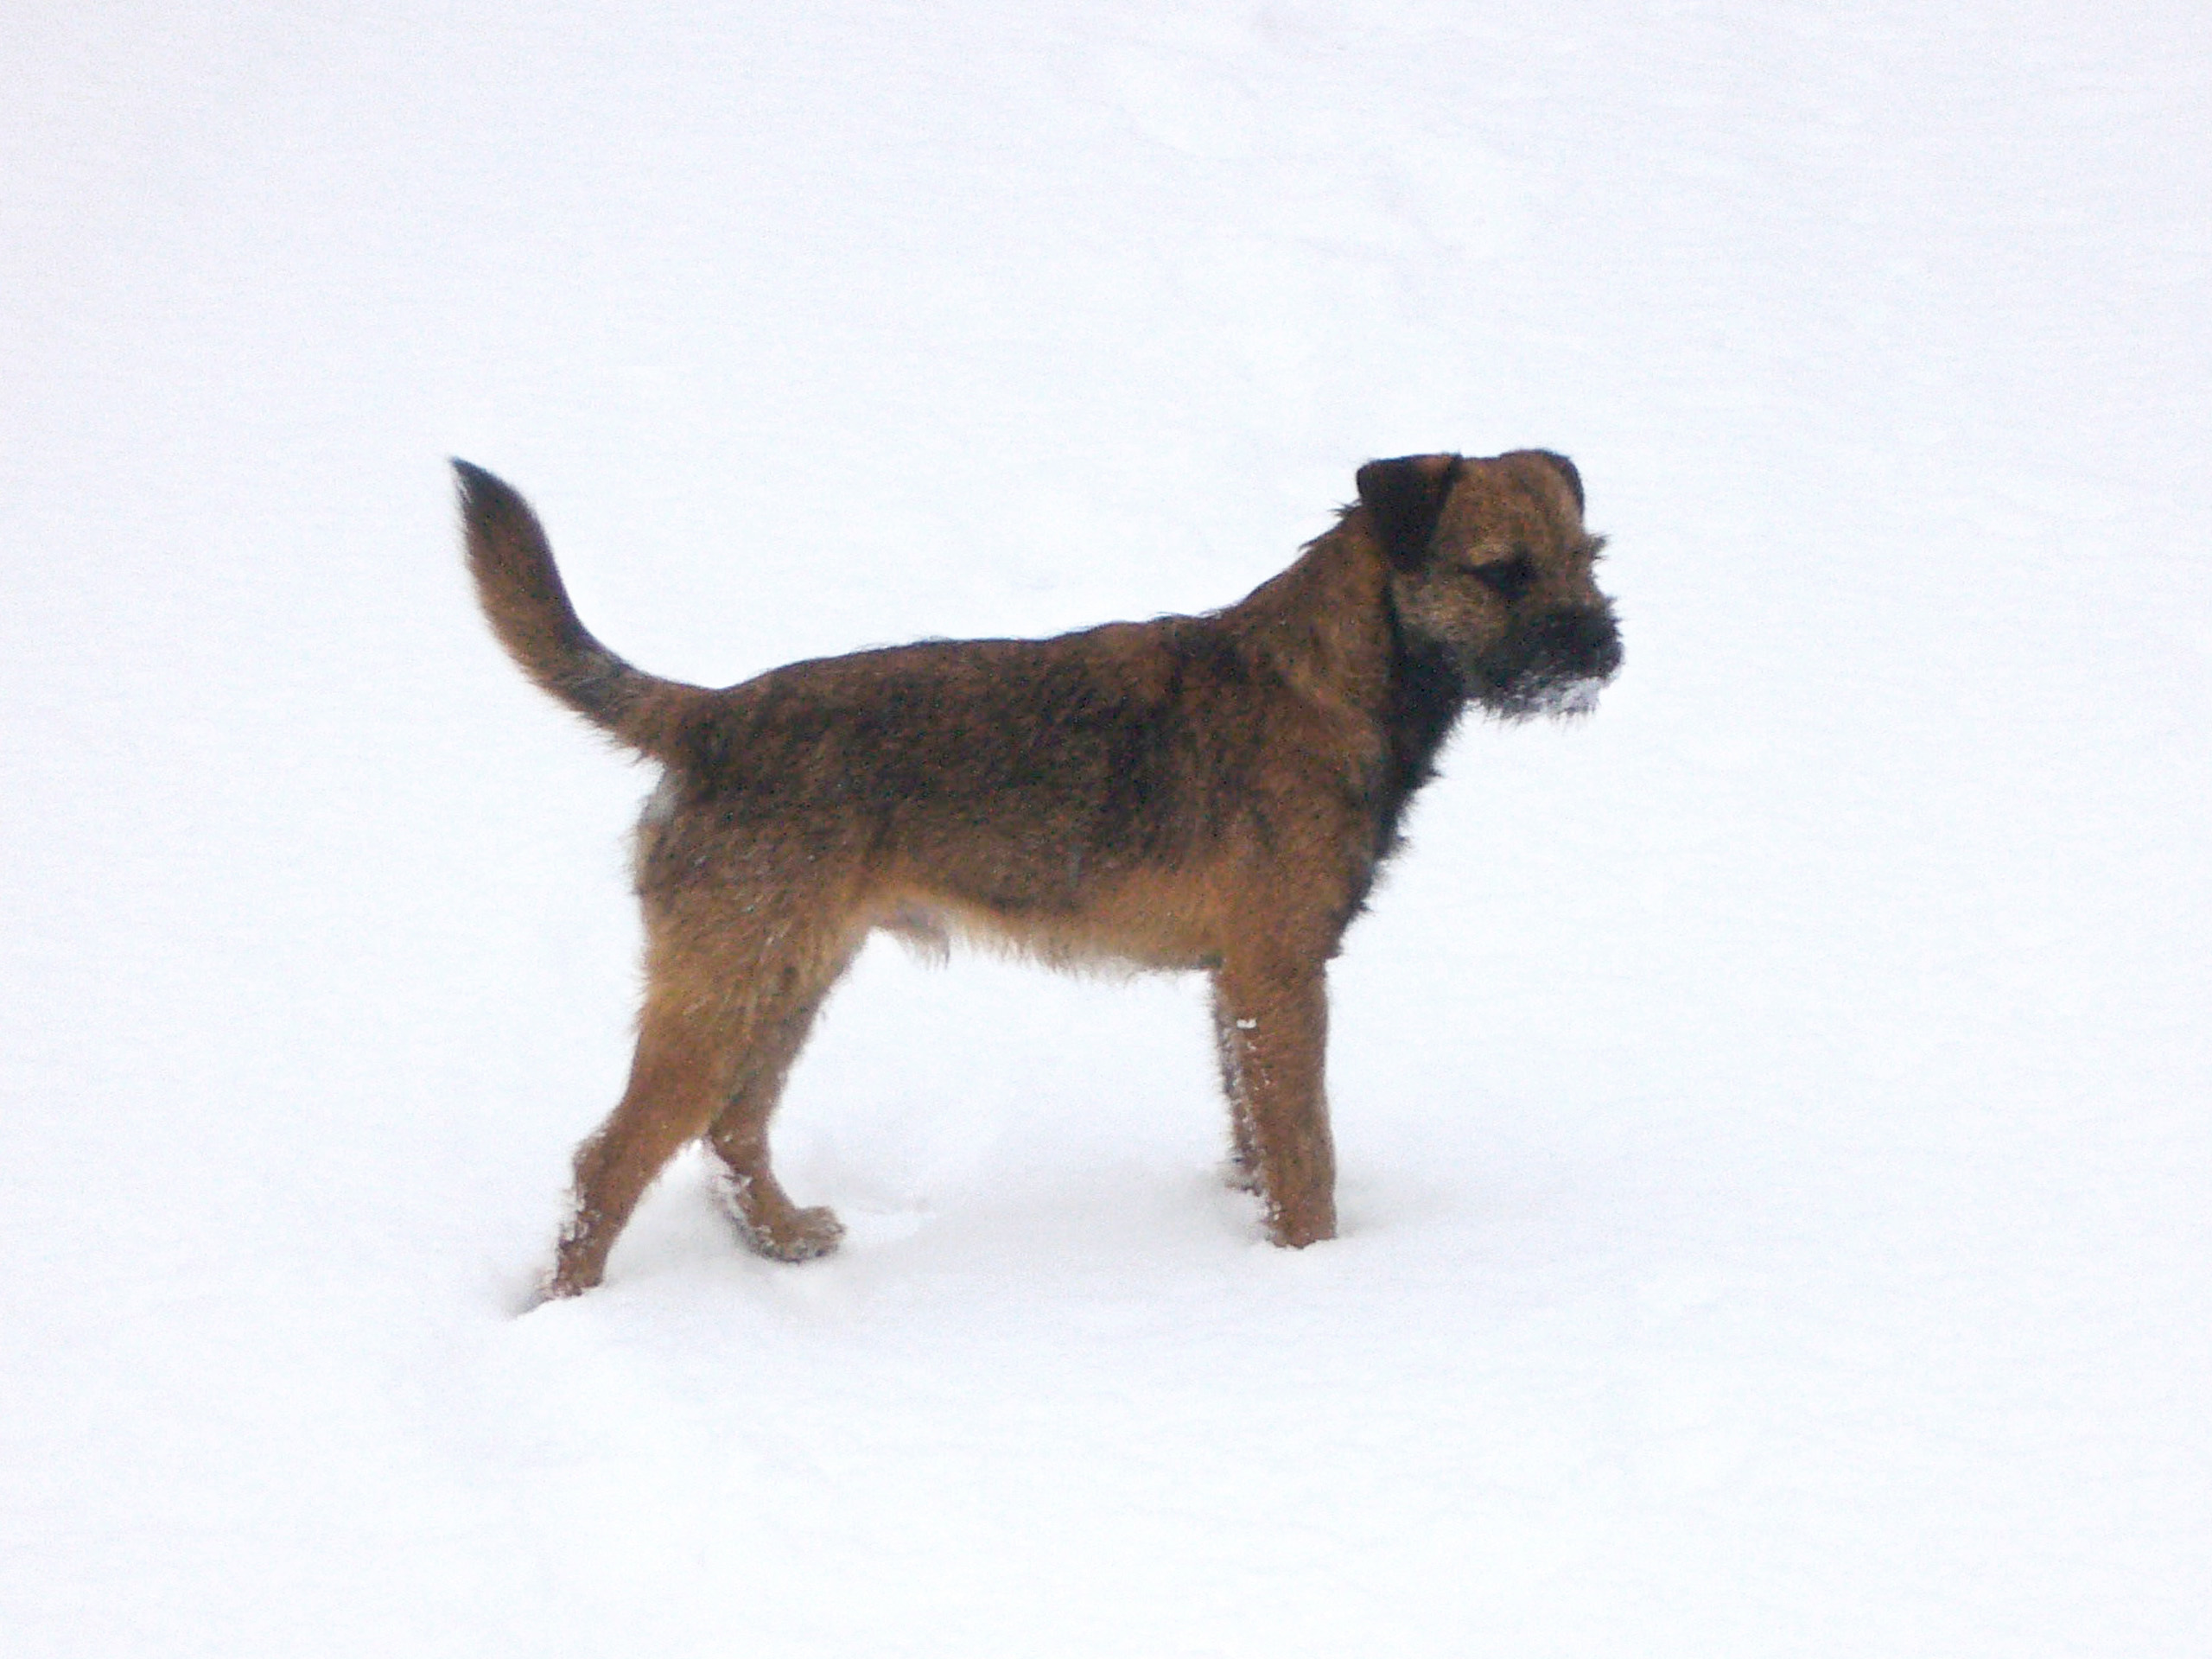 Grizzle and tan border terrier standing in show.